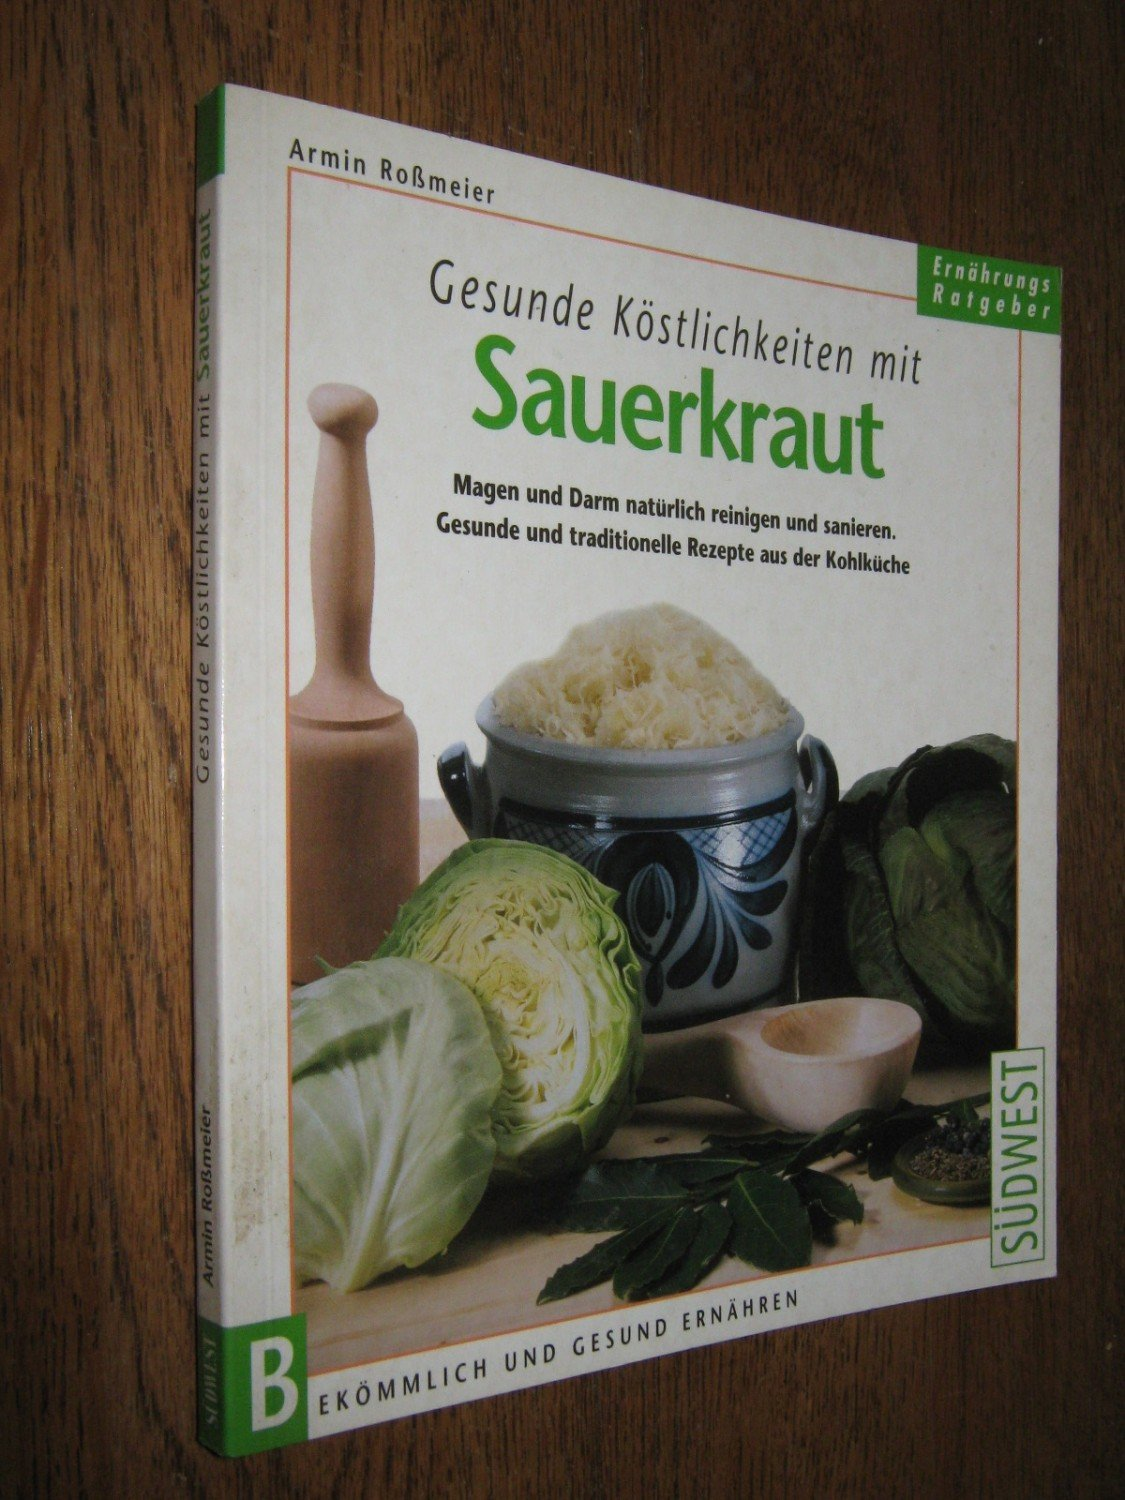 isbn 9783517077451 gesunde k stlichkeiten mit sauerkraut. Black Bedroom Furniture Sets. Home Design Ideas